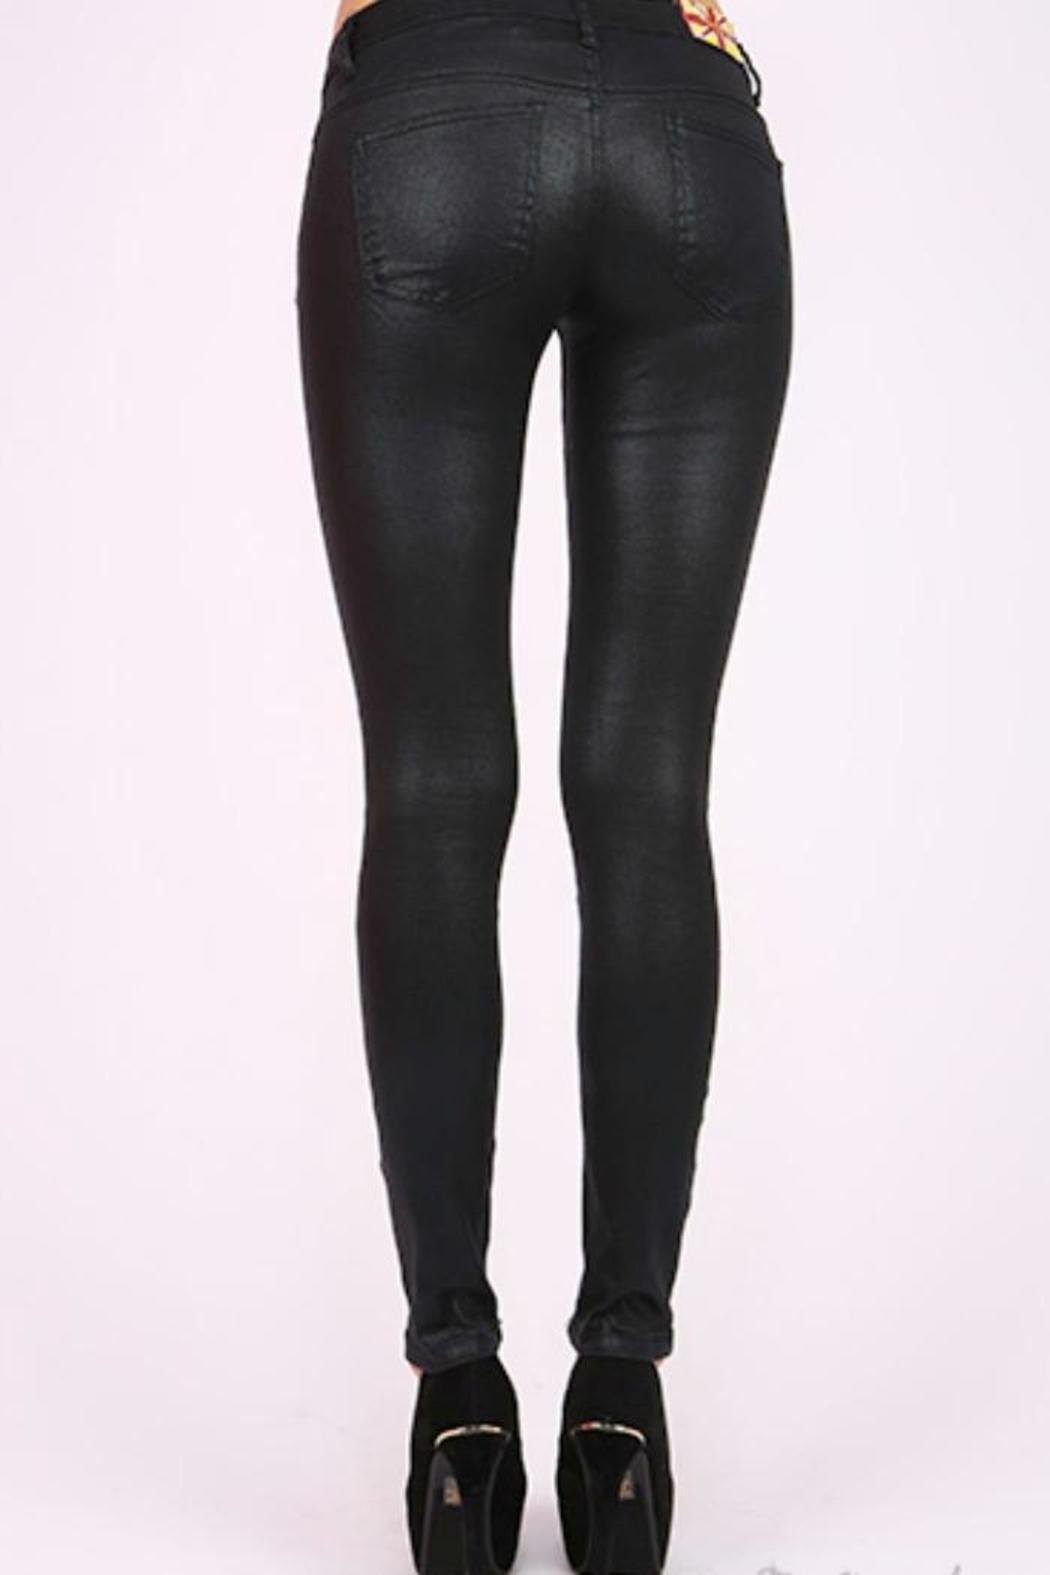 Machine Jeans Black Skinny Jeans from New Jersey by Fly Girl ...